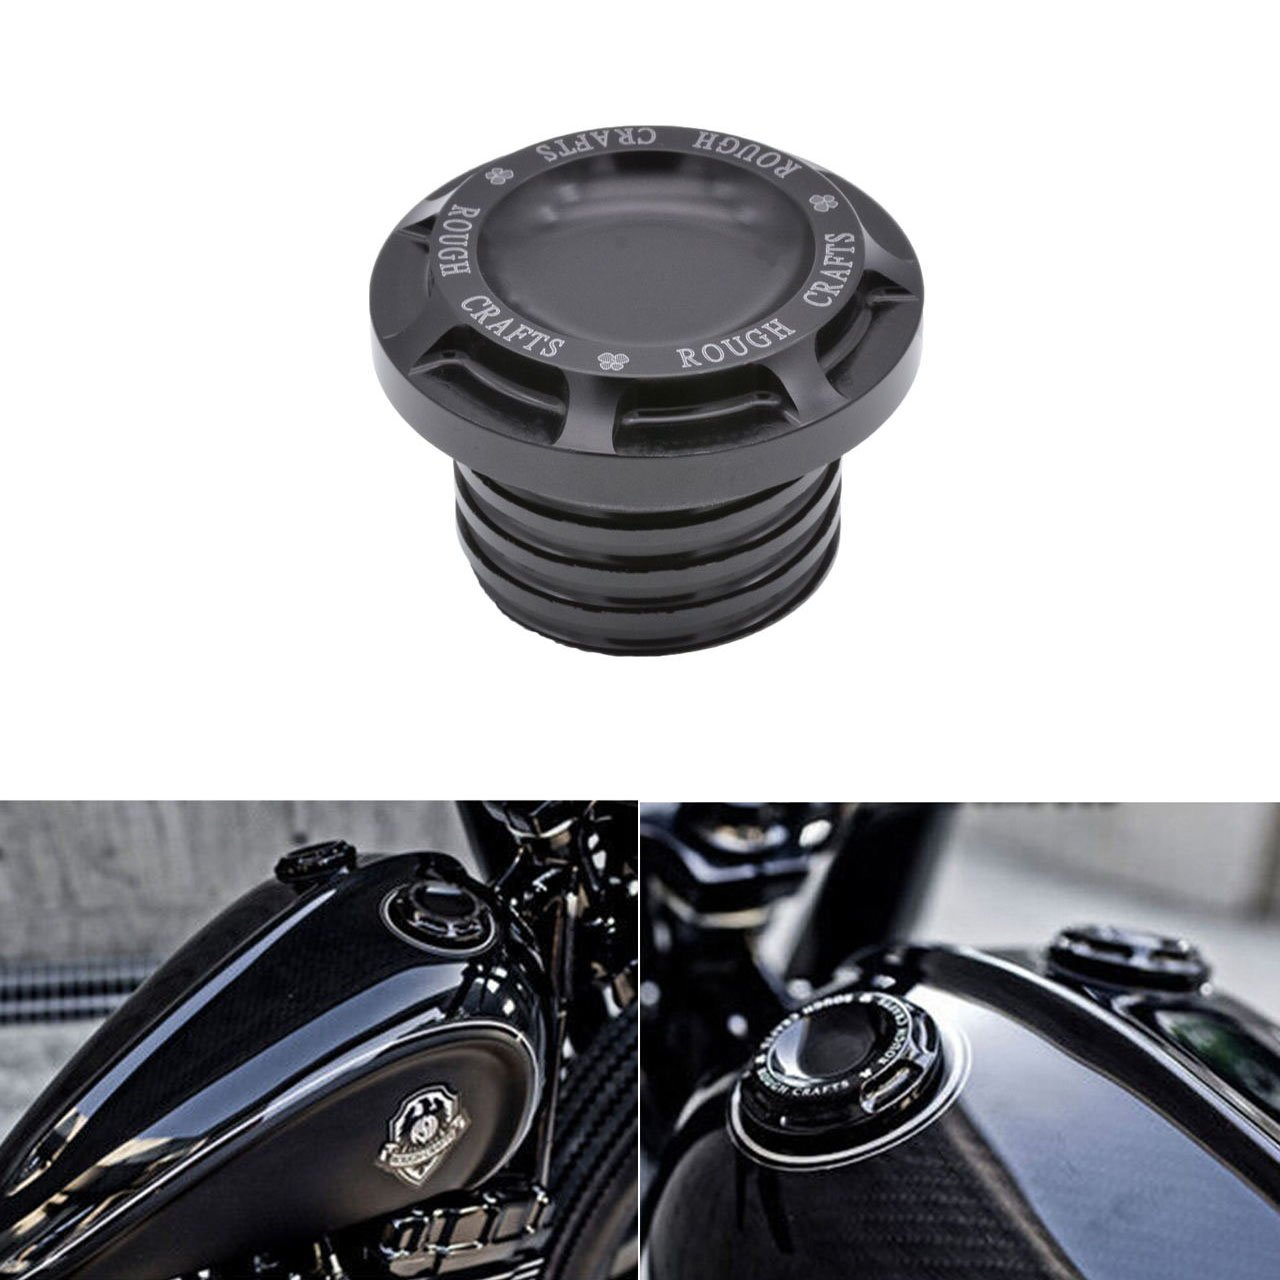 KaTur Motorcycle Black CNC Rough Crafts Aluminum Fuel Gas Oil Cap For Harley Sportster XL 1200 883 1996-2014